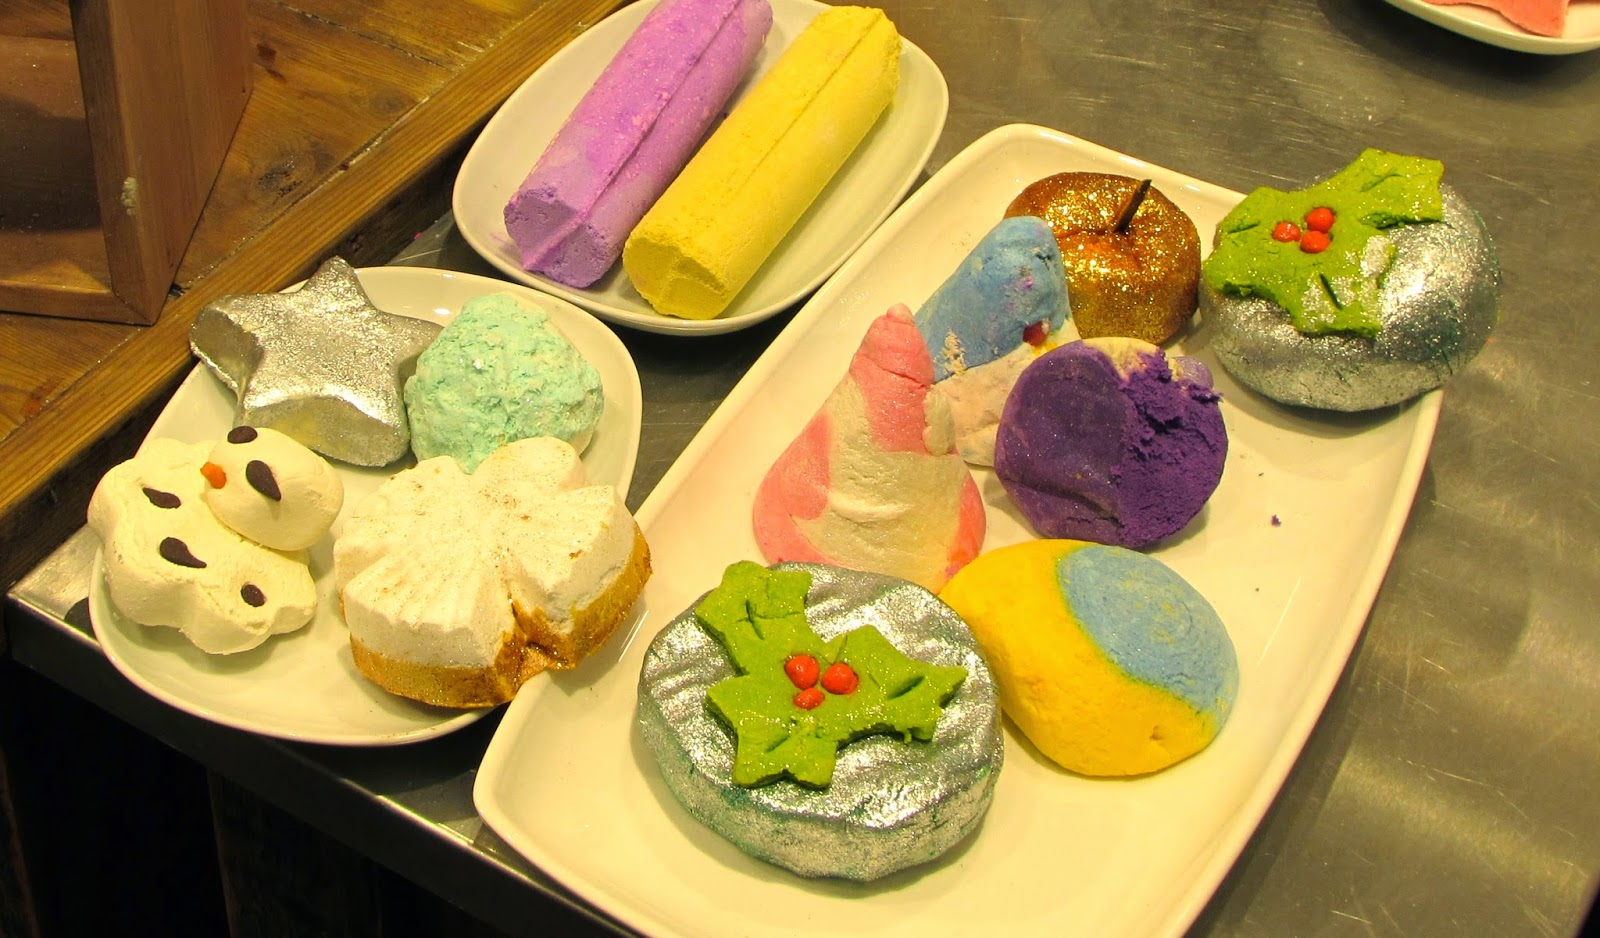 Lush Christmas bath bars on display: Holly Golightly, Christmas Eve, Candy Mountain etc